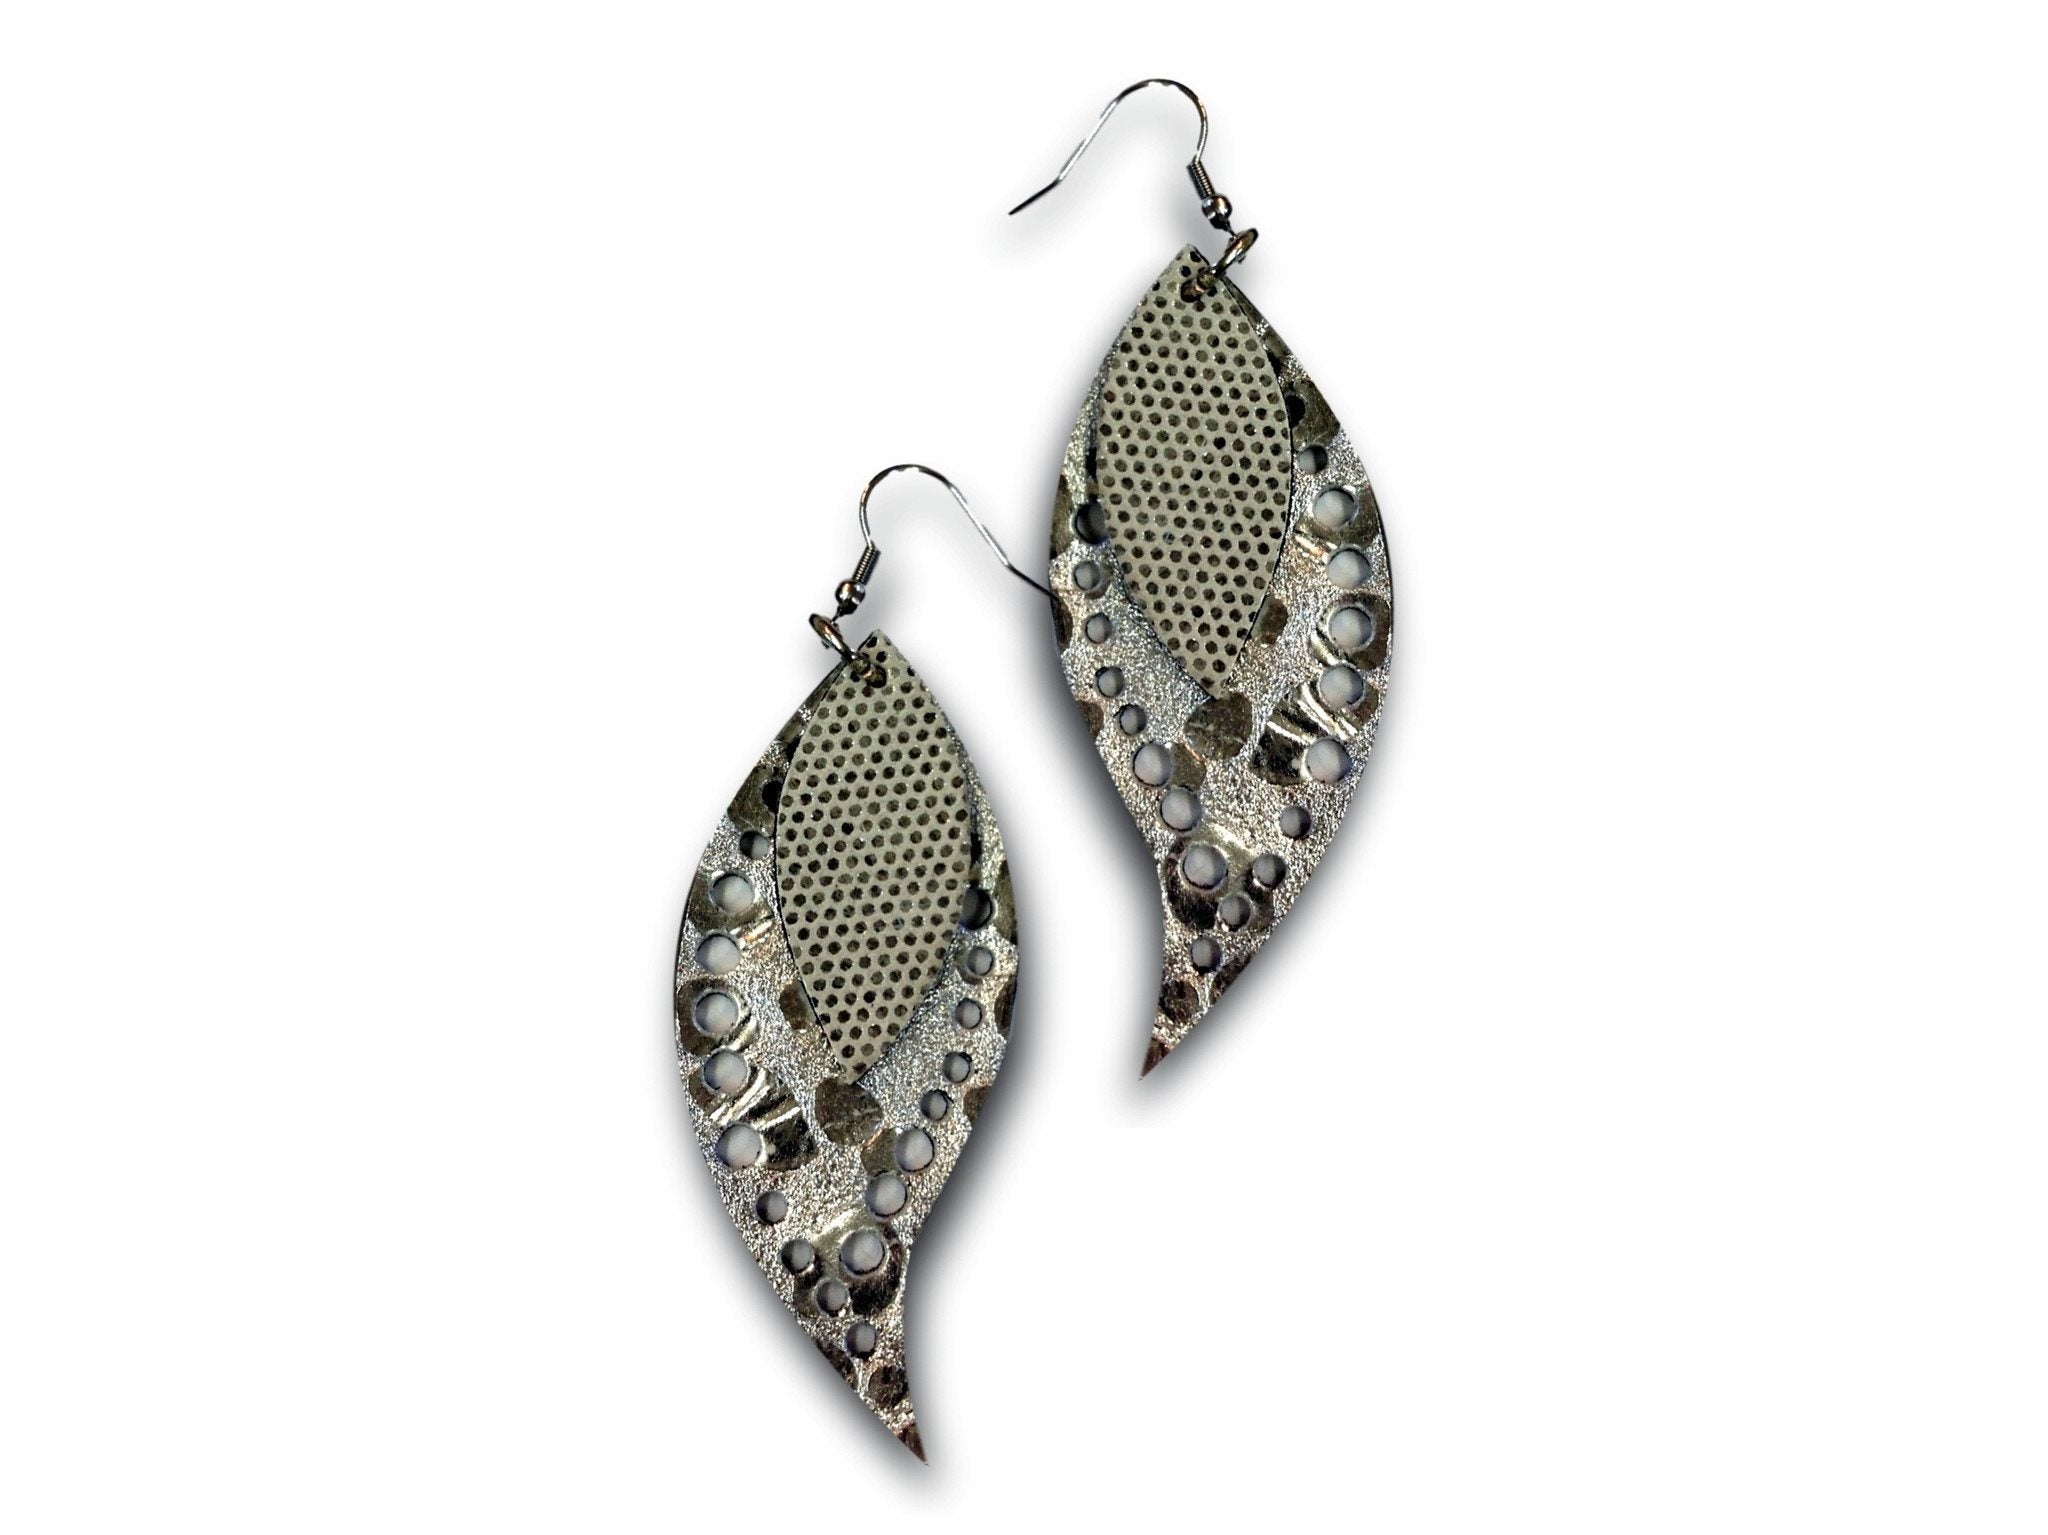 Handmade leather drop earrings LEAVES (silver/shiny silver/glitter)